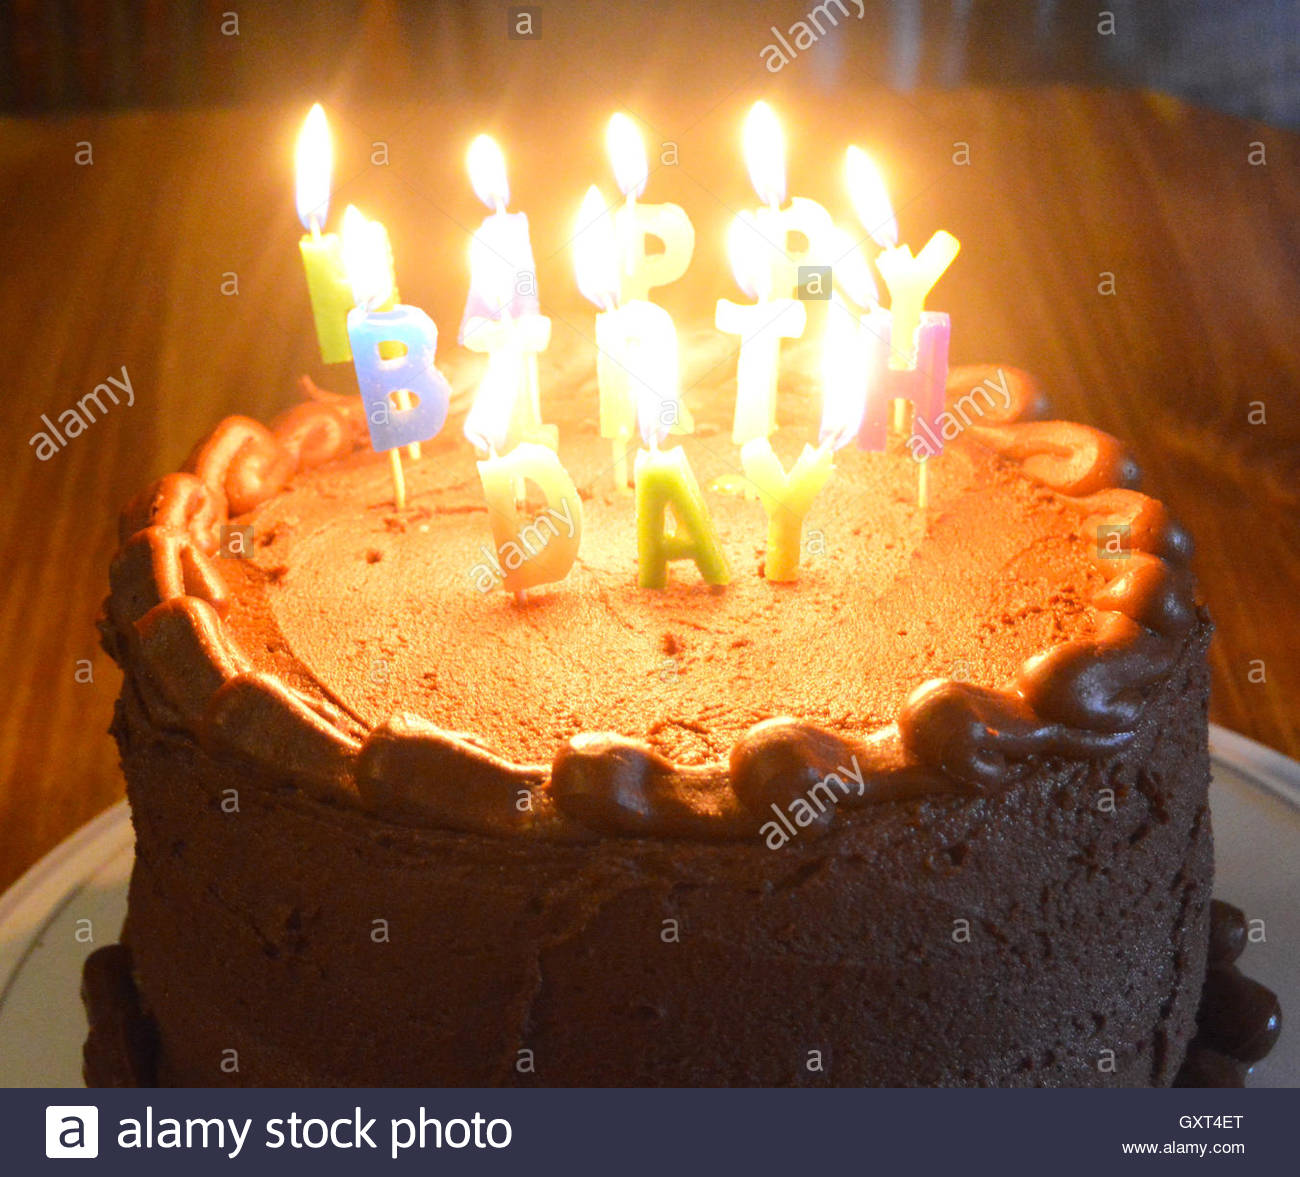 A chocolate birthday cake with lit candles Stock Photo 119773664